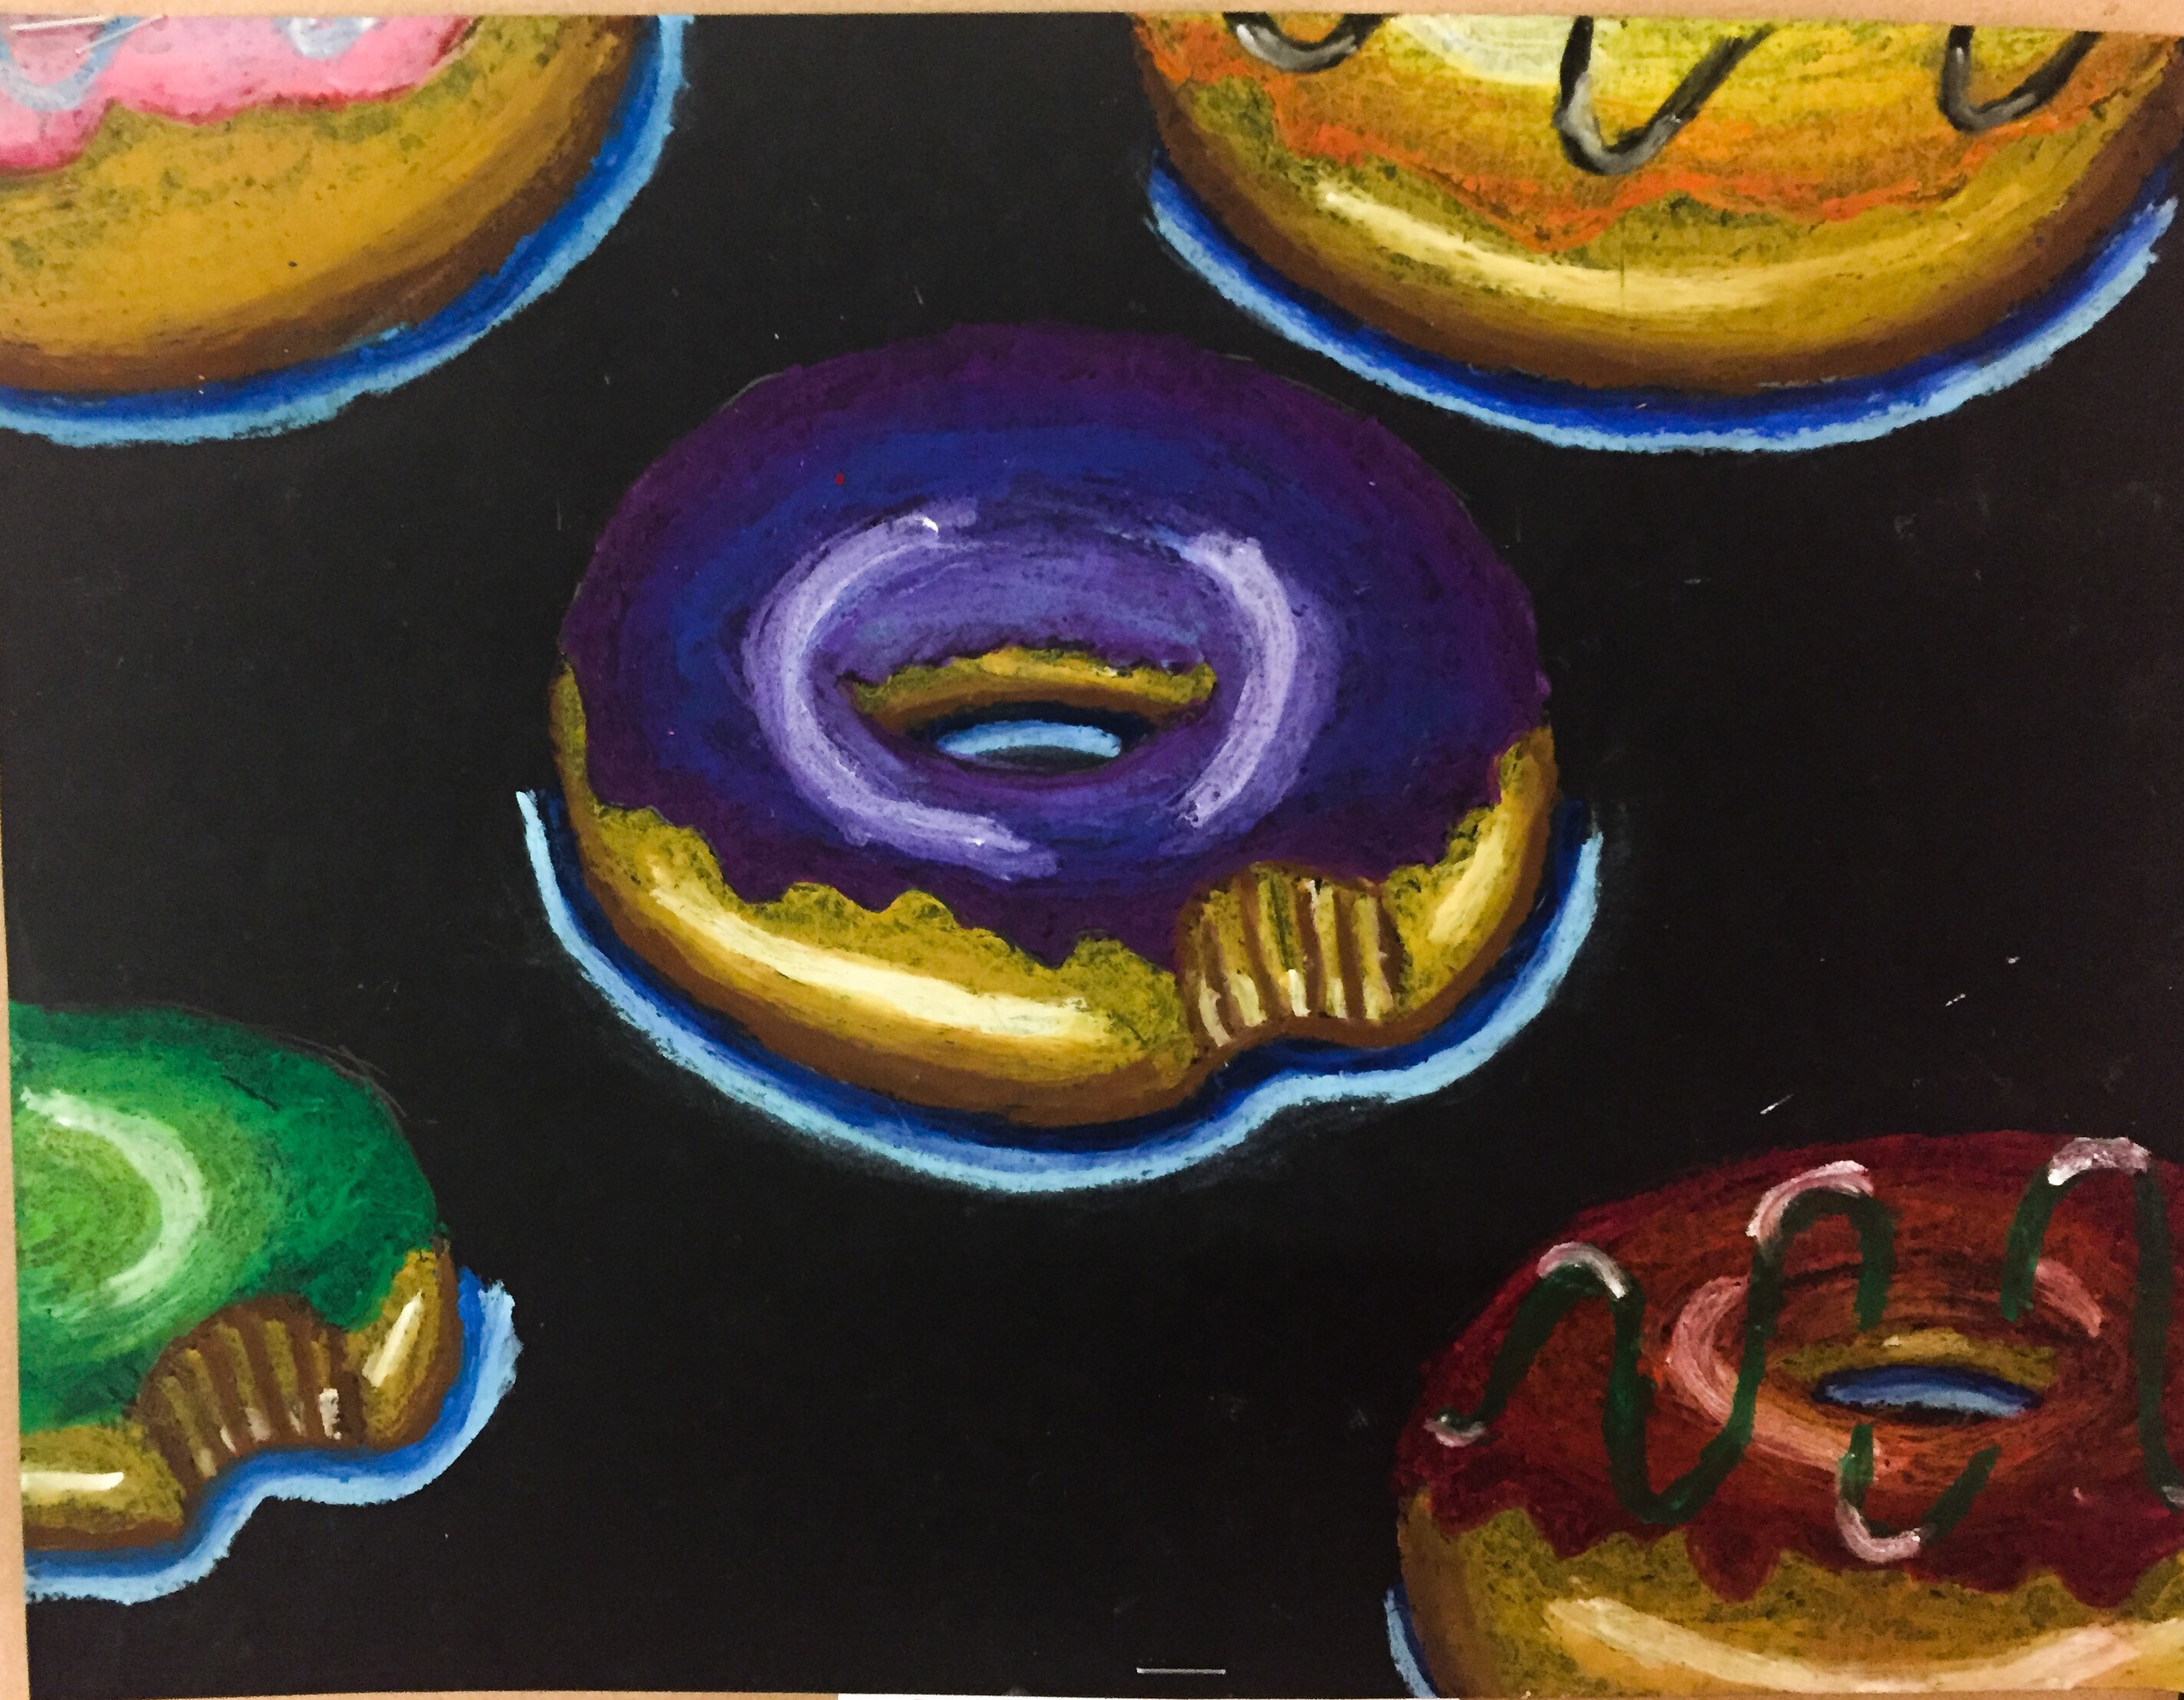 Donut Artwork: Student Work